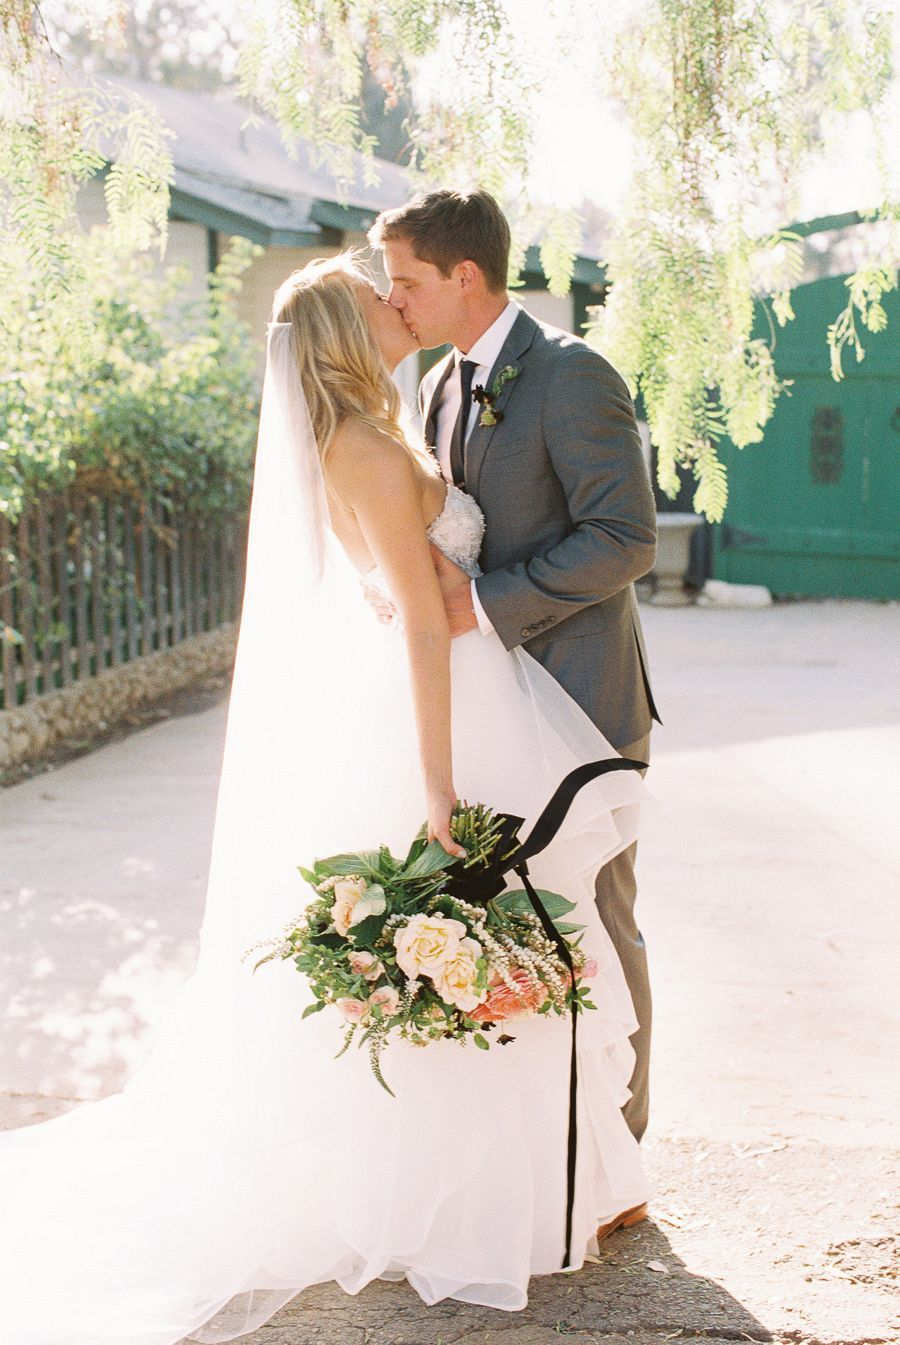 Whimsical and classic wedding classic wedding style pinterest